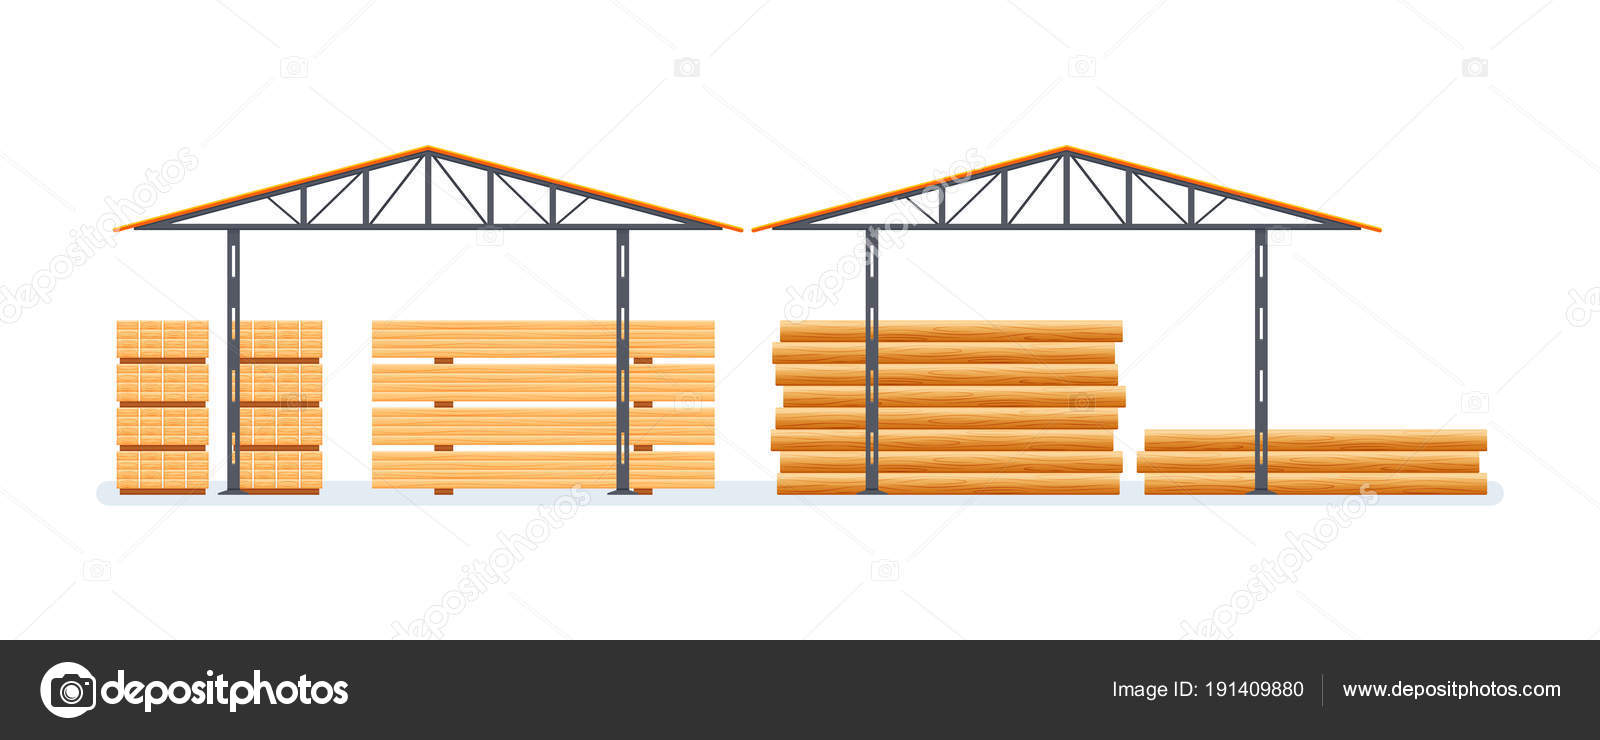 Factory clipart industrial shed. Plant wood processing production